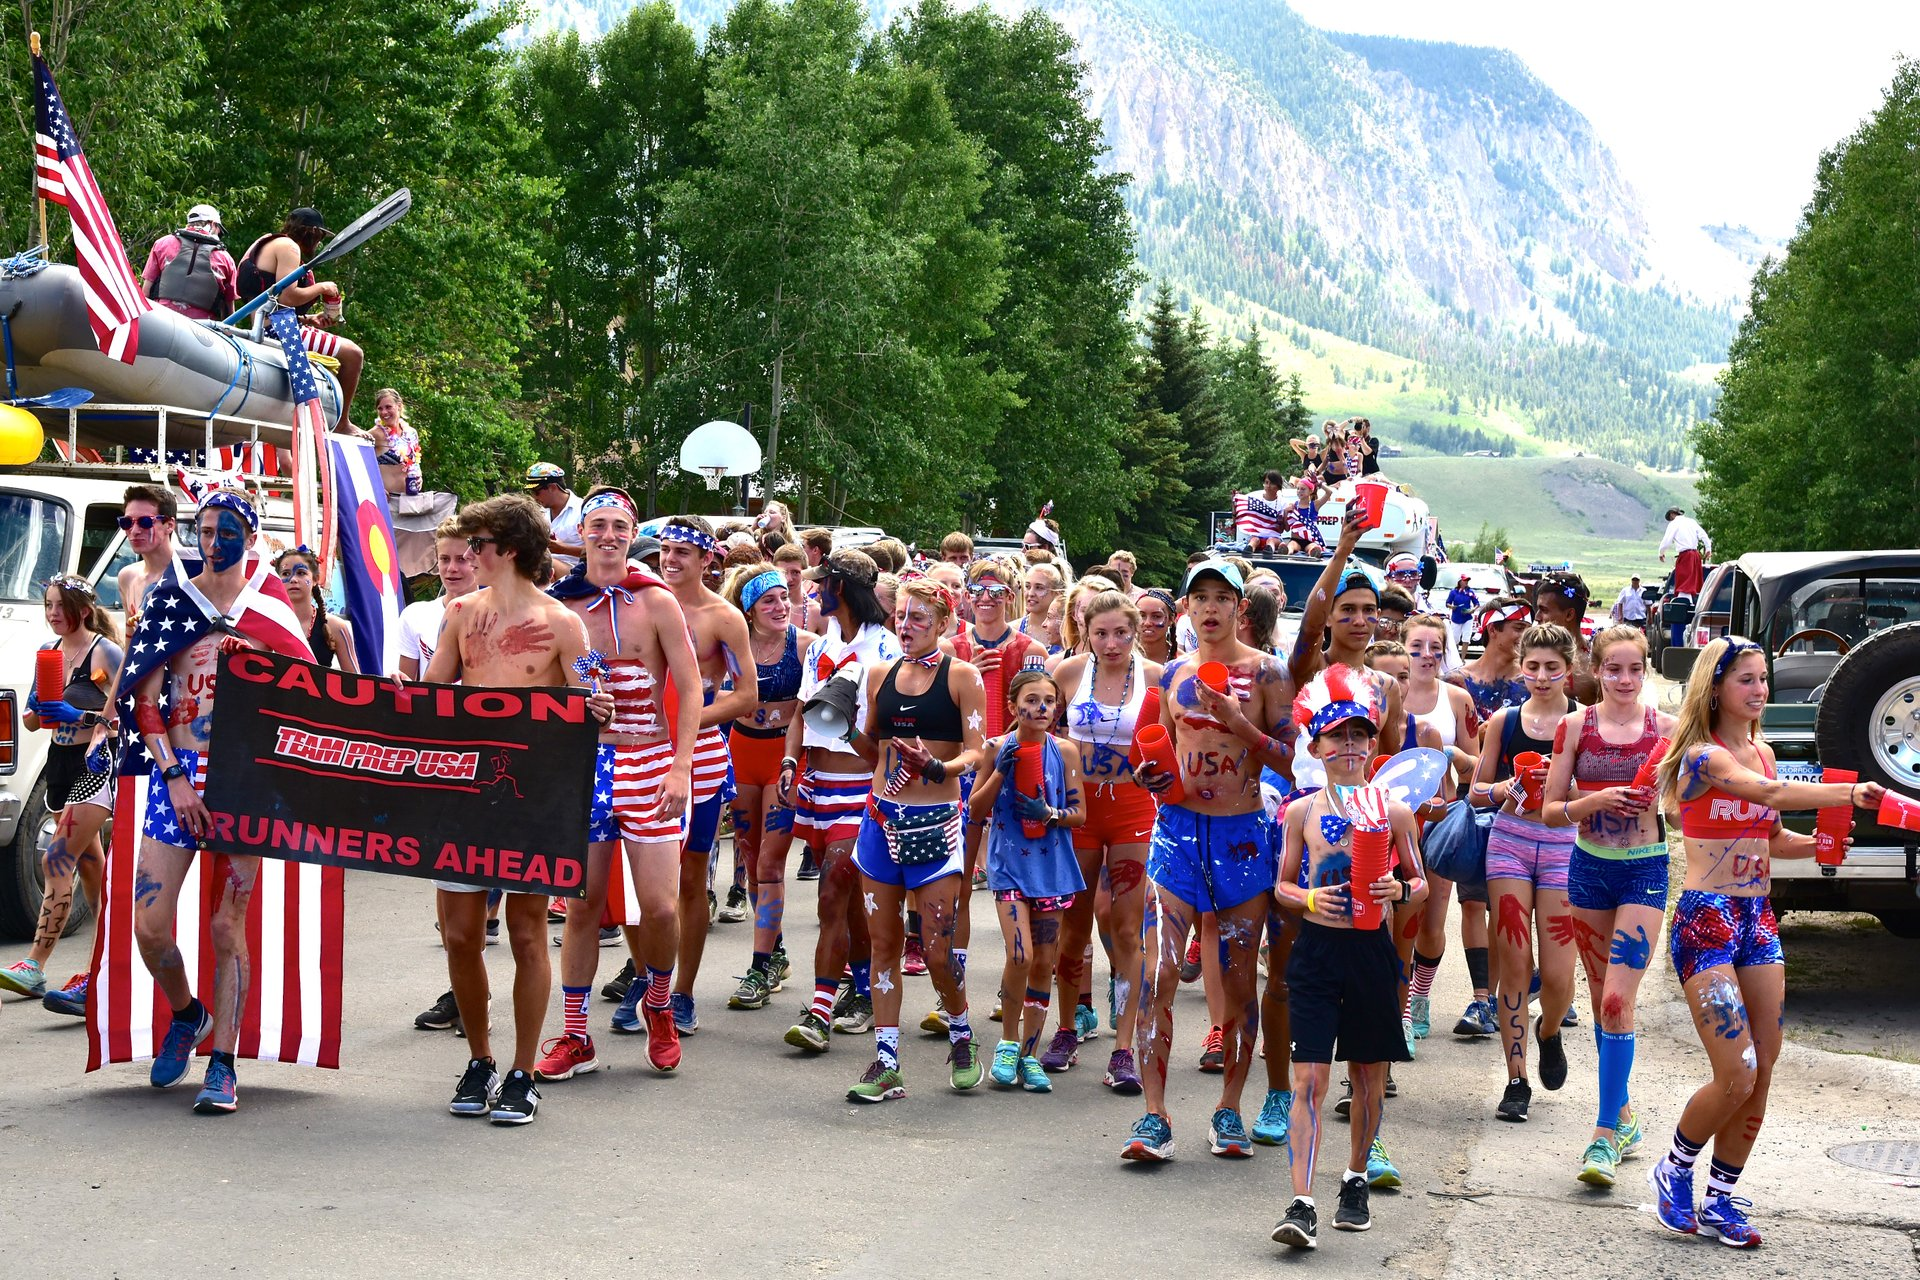 4th of July Parade in Crested Butte, Colorado   2020